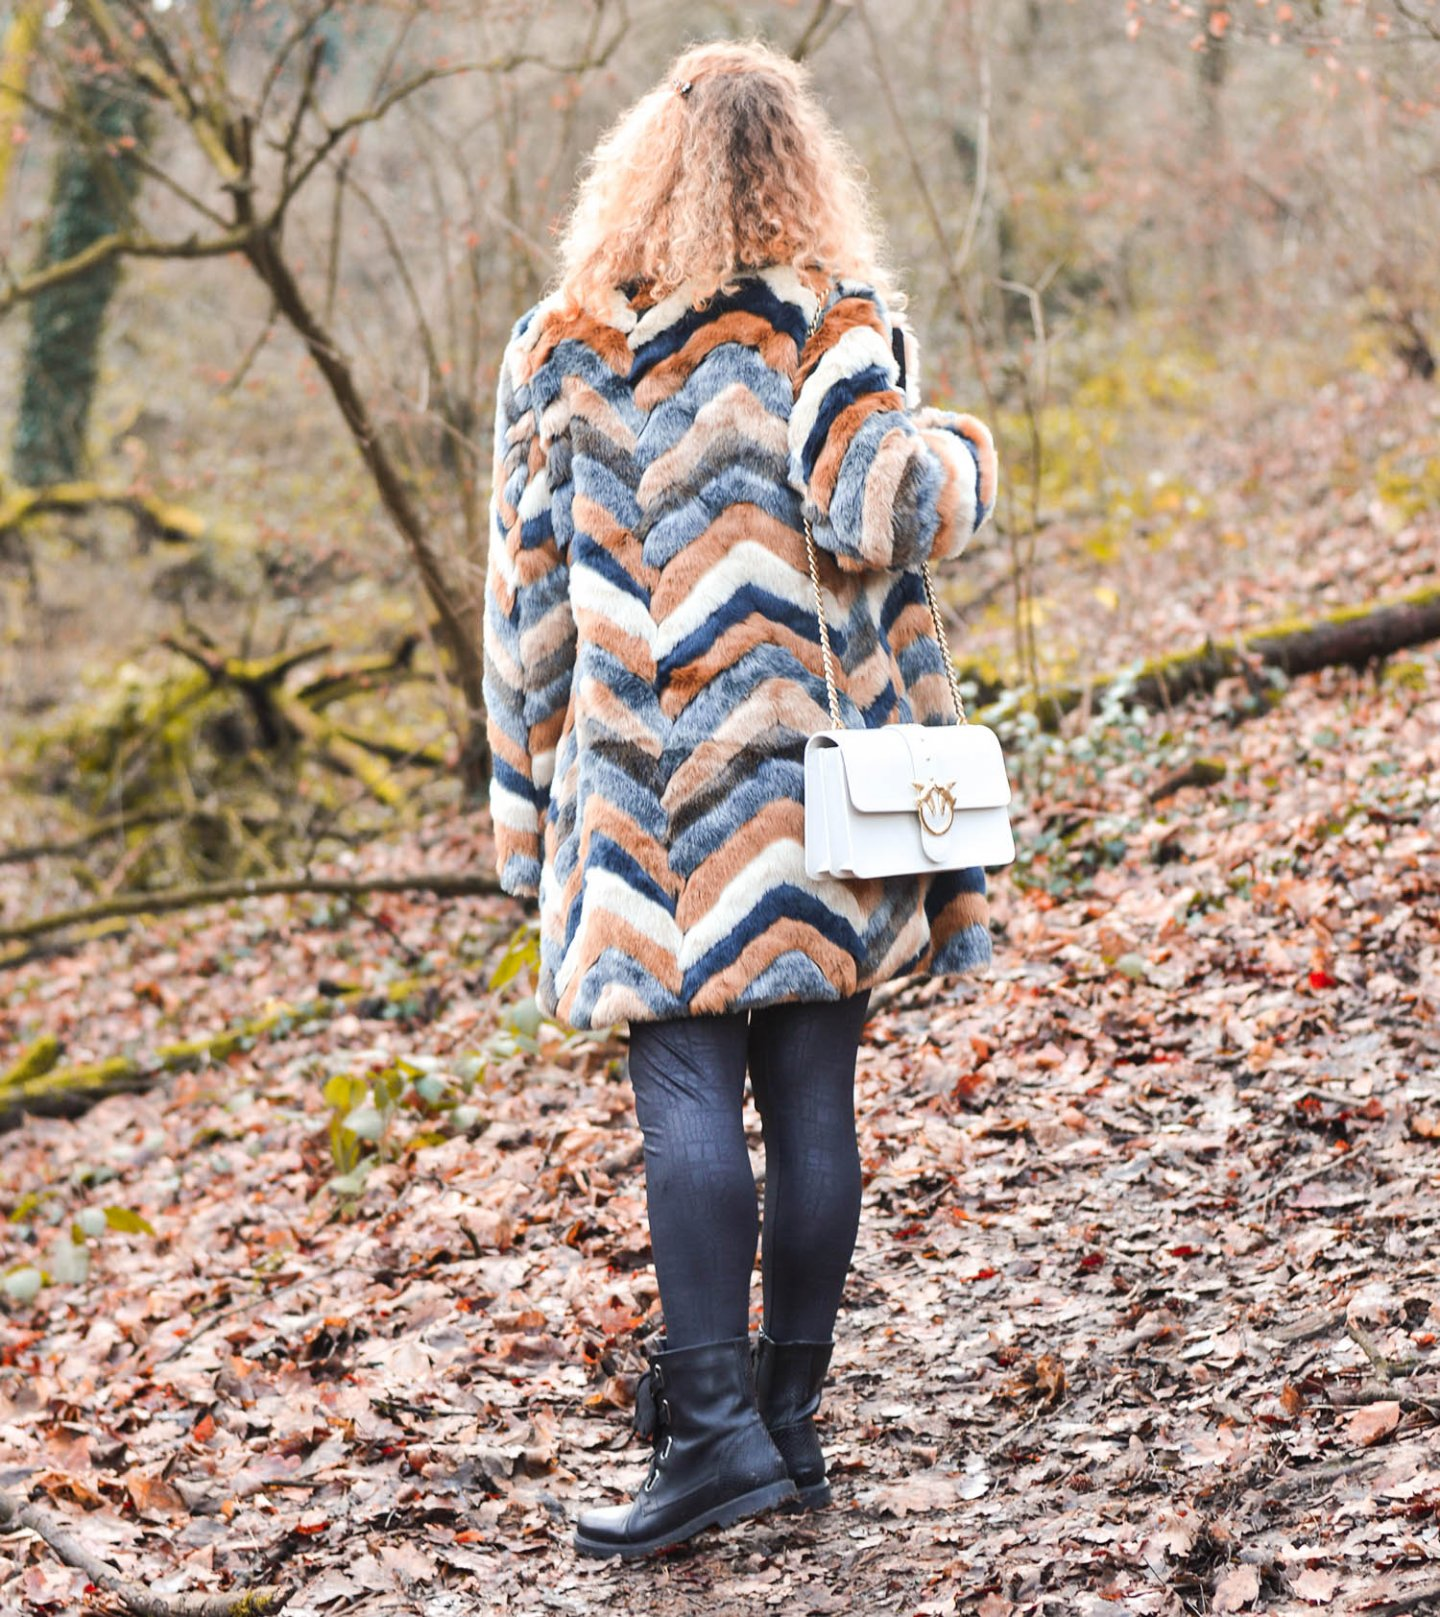 Pinko-Tasche-Kunstfellmantel-weißer-Cardigan-Kationette-Fashionblog-Germany-Outfit